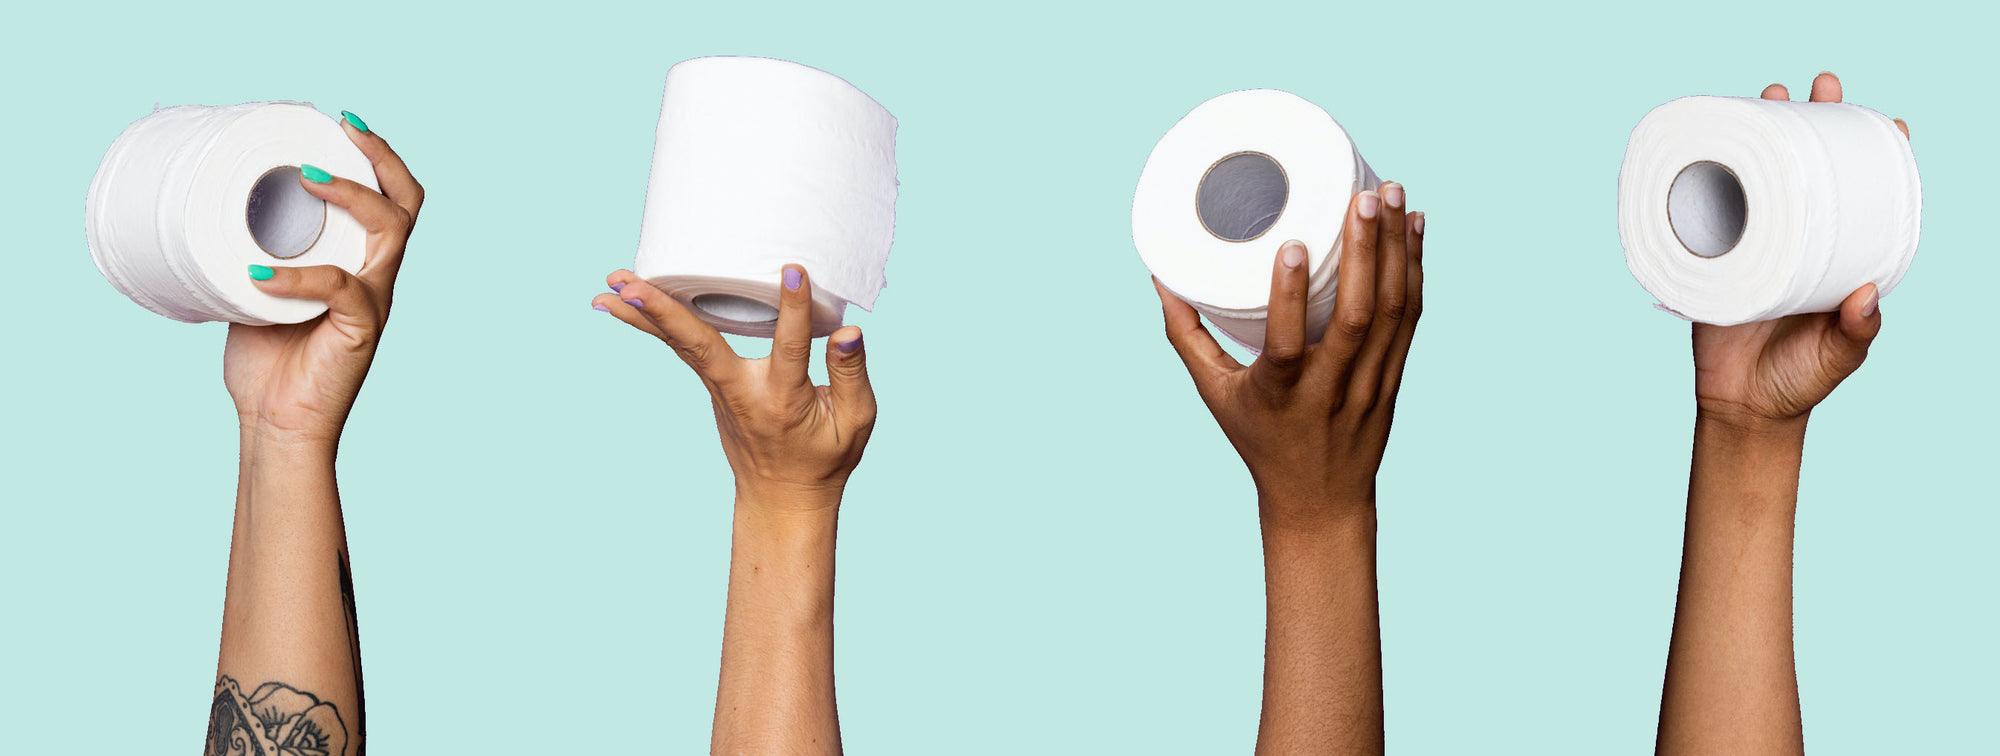 Hands holding toilet paper up in the air -- About Bim Bam Boo: A woman-run, minority led toilet paper company